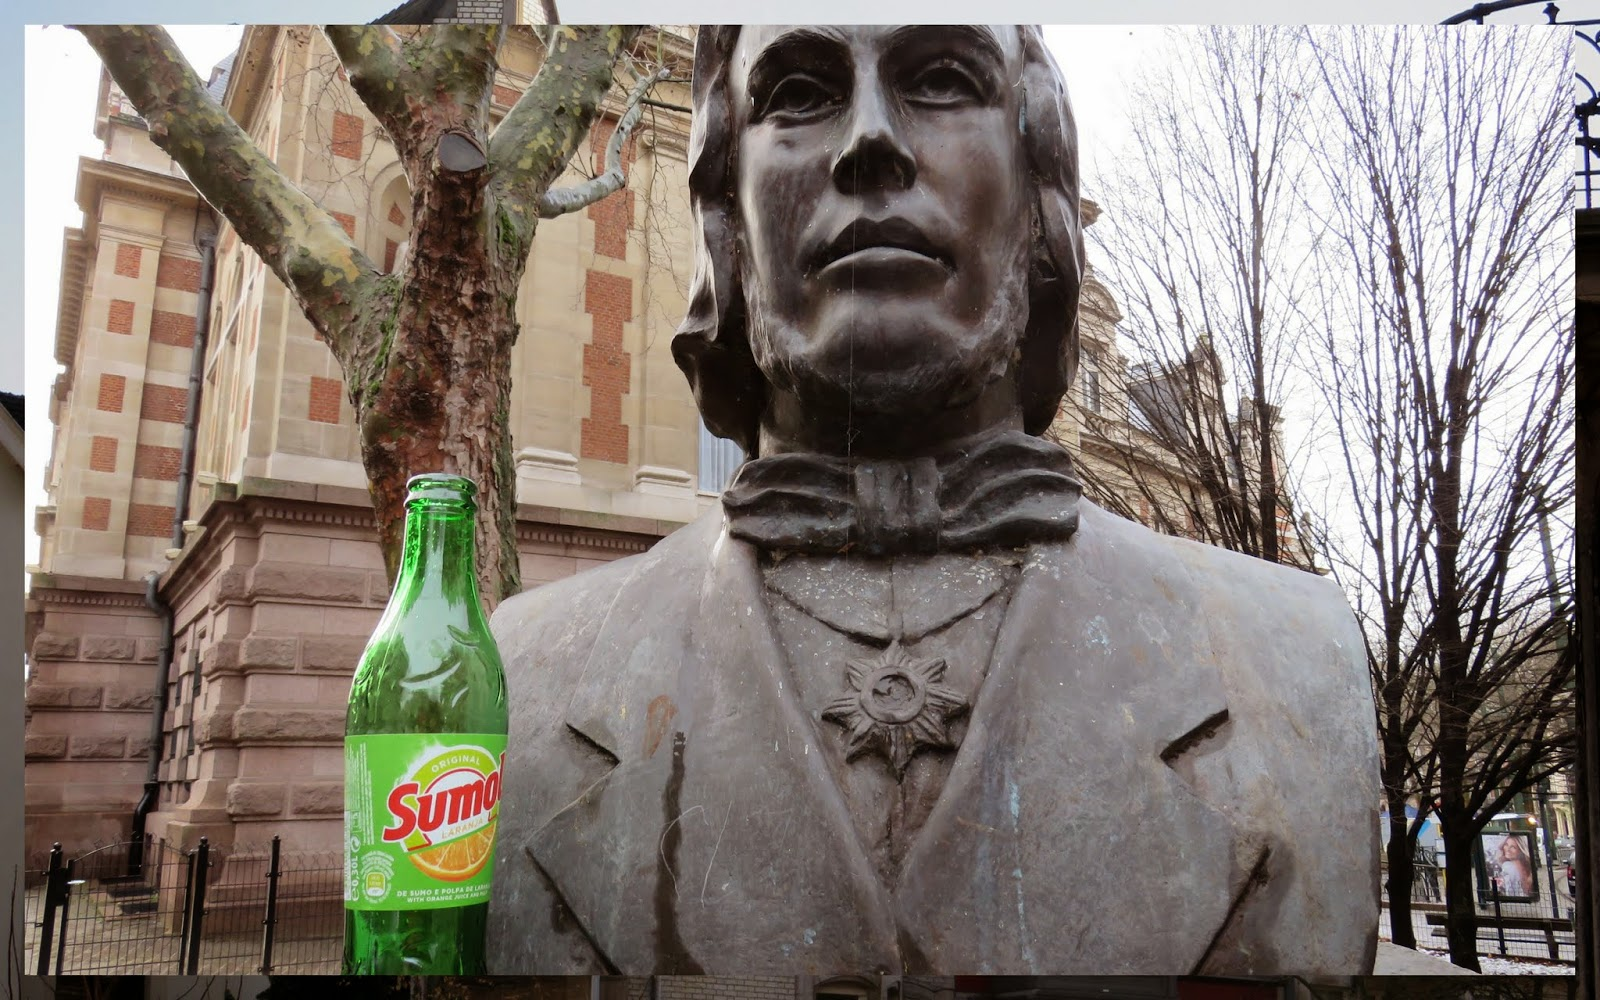 Brussels - Statue with Soda Bottle